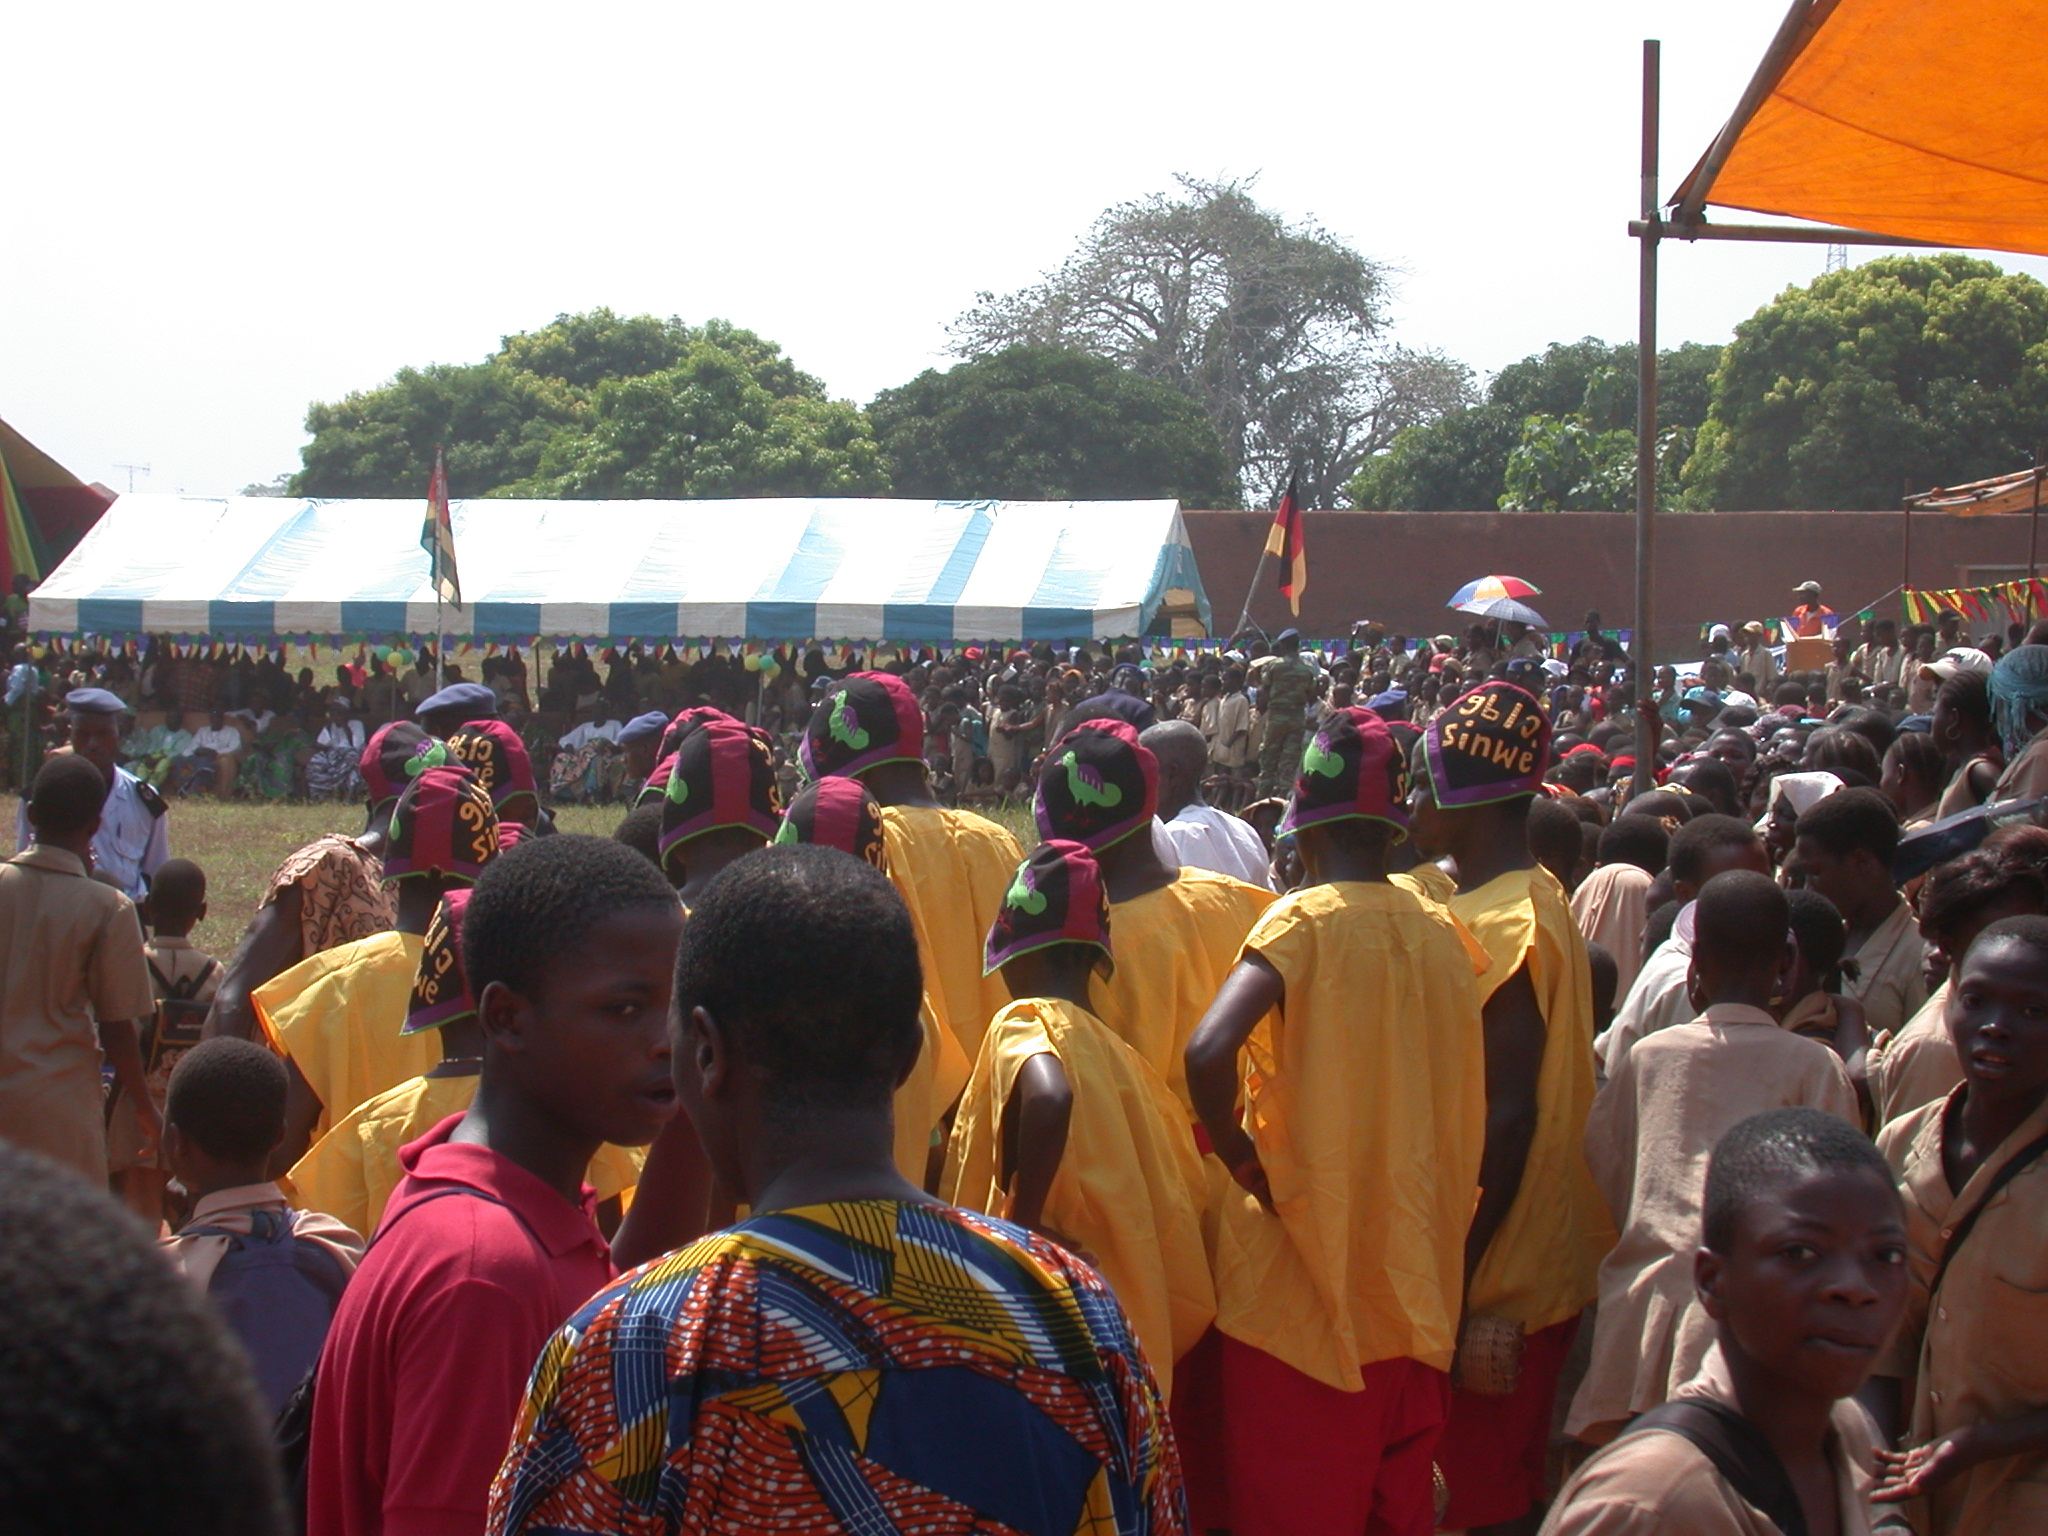 Organized Troup in Crowd, Danxome Festival Celebrations at Palace Grounds, Abomey History Museum, Abomey, Benin